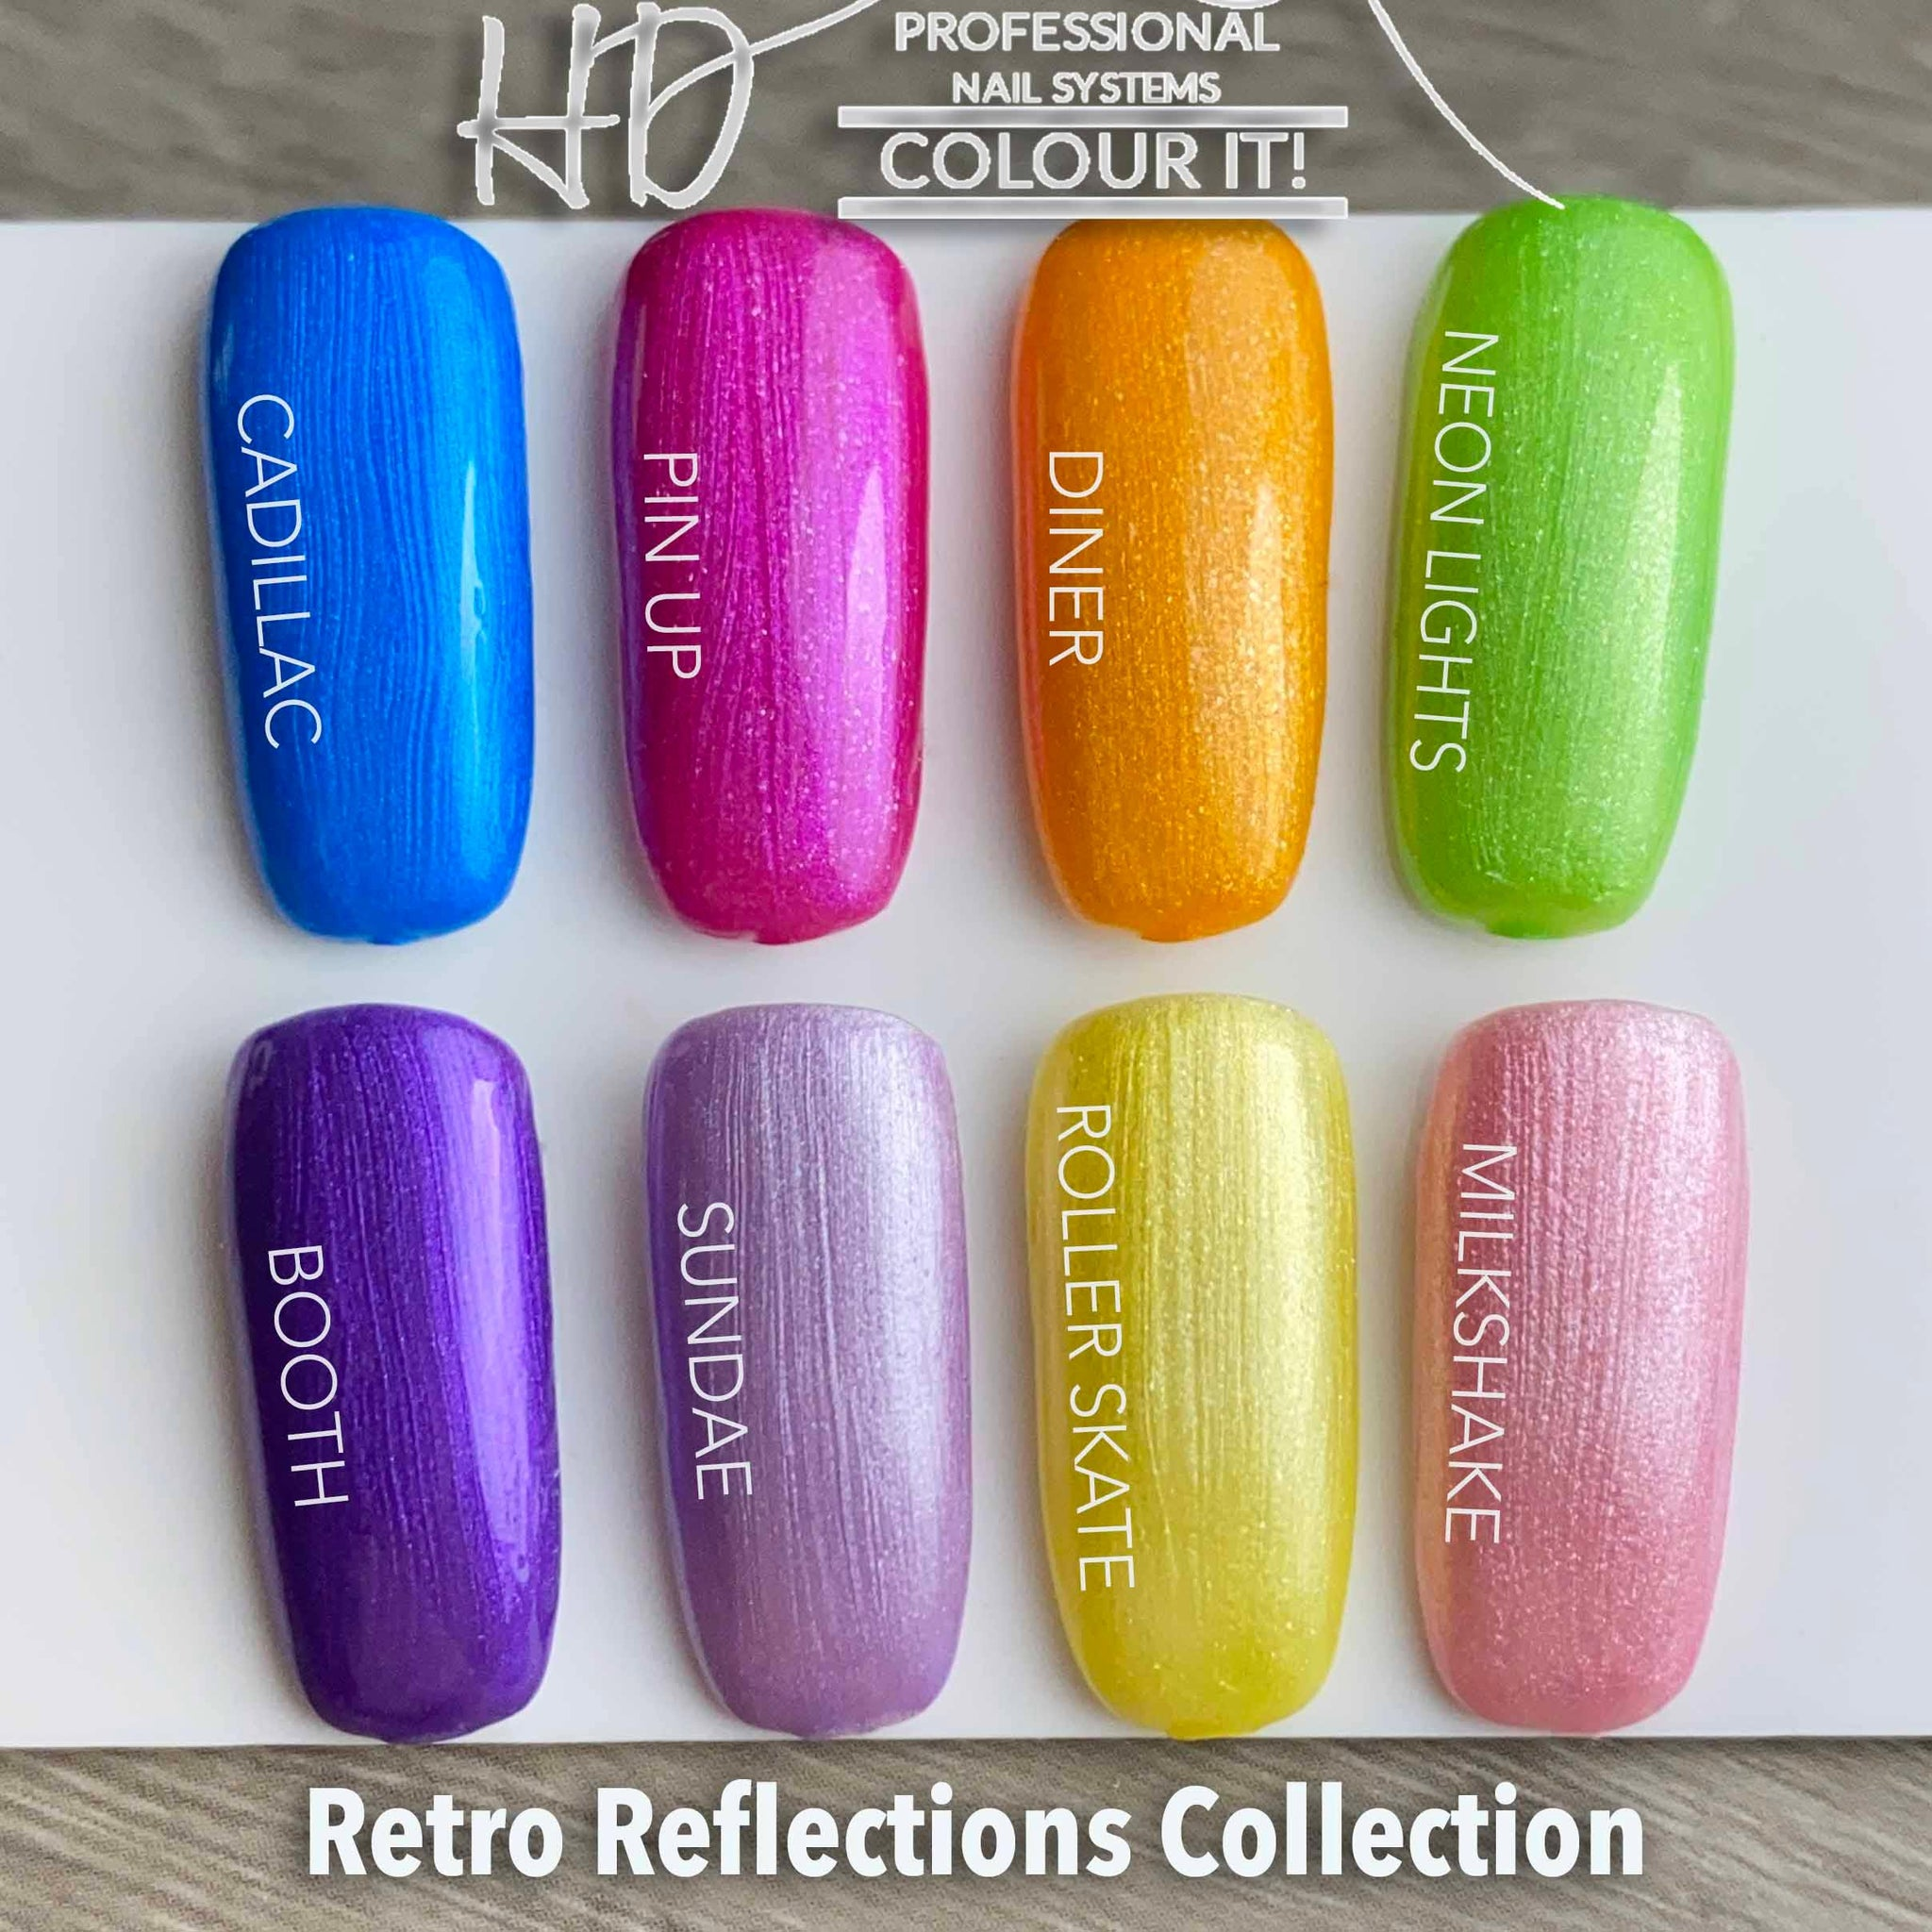 HD Colour It! Retro Reflections Collection (all 8 colors 15ml)